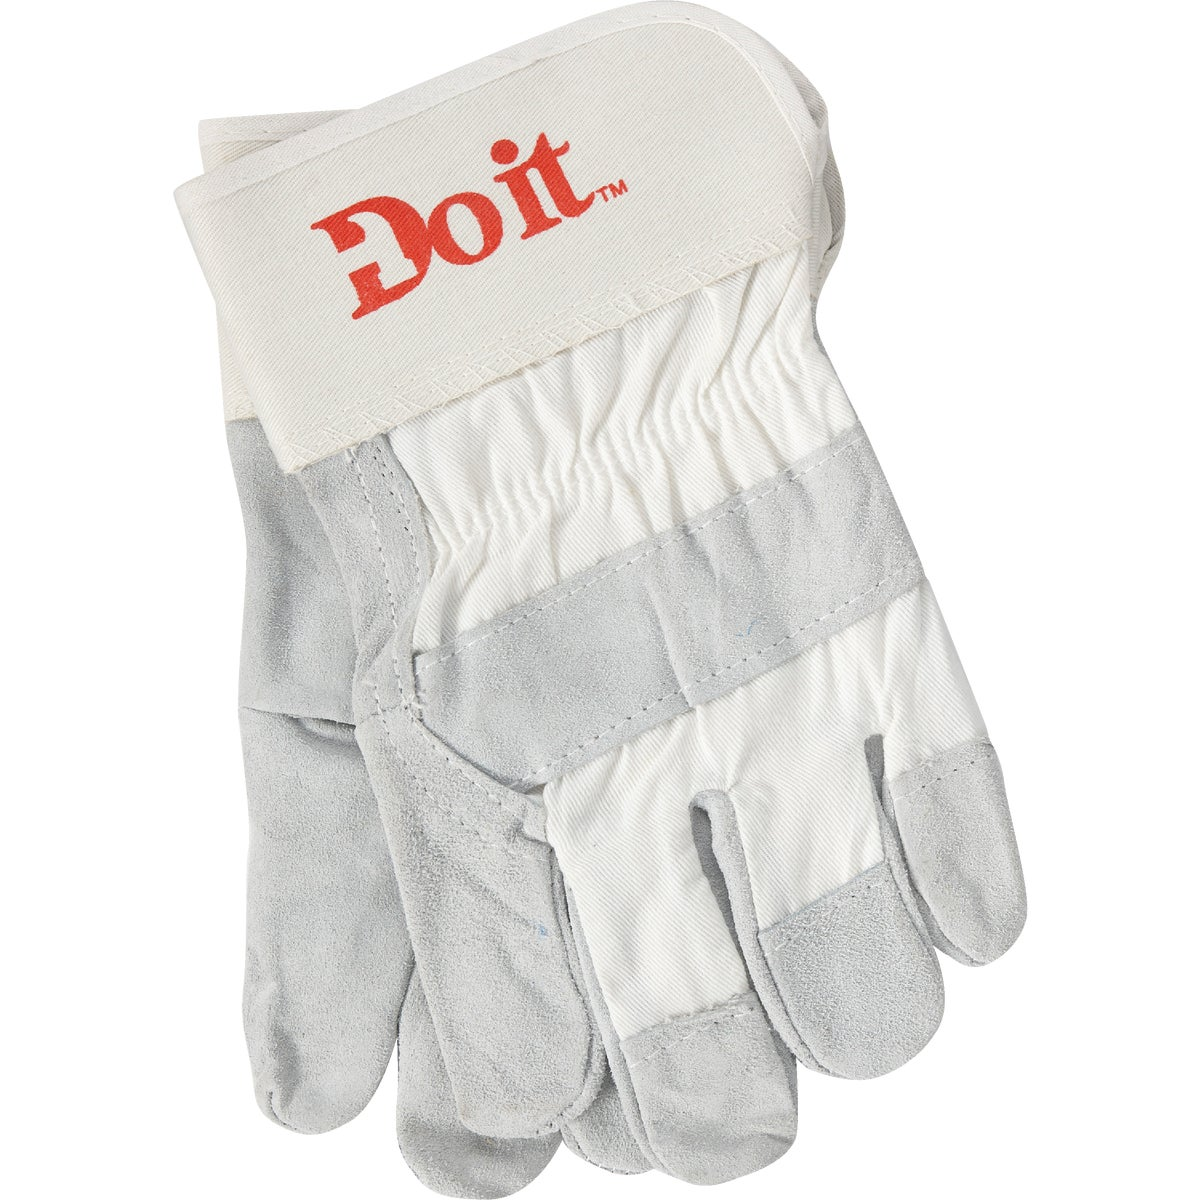 LRG LEATHER PALM GLOVE - 768855 by Do it Best